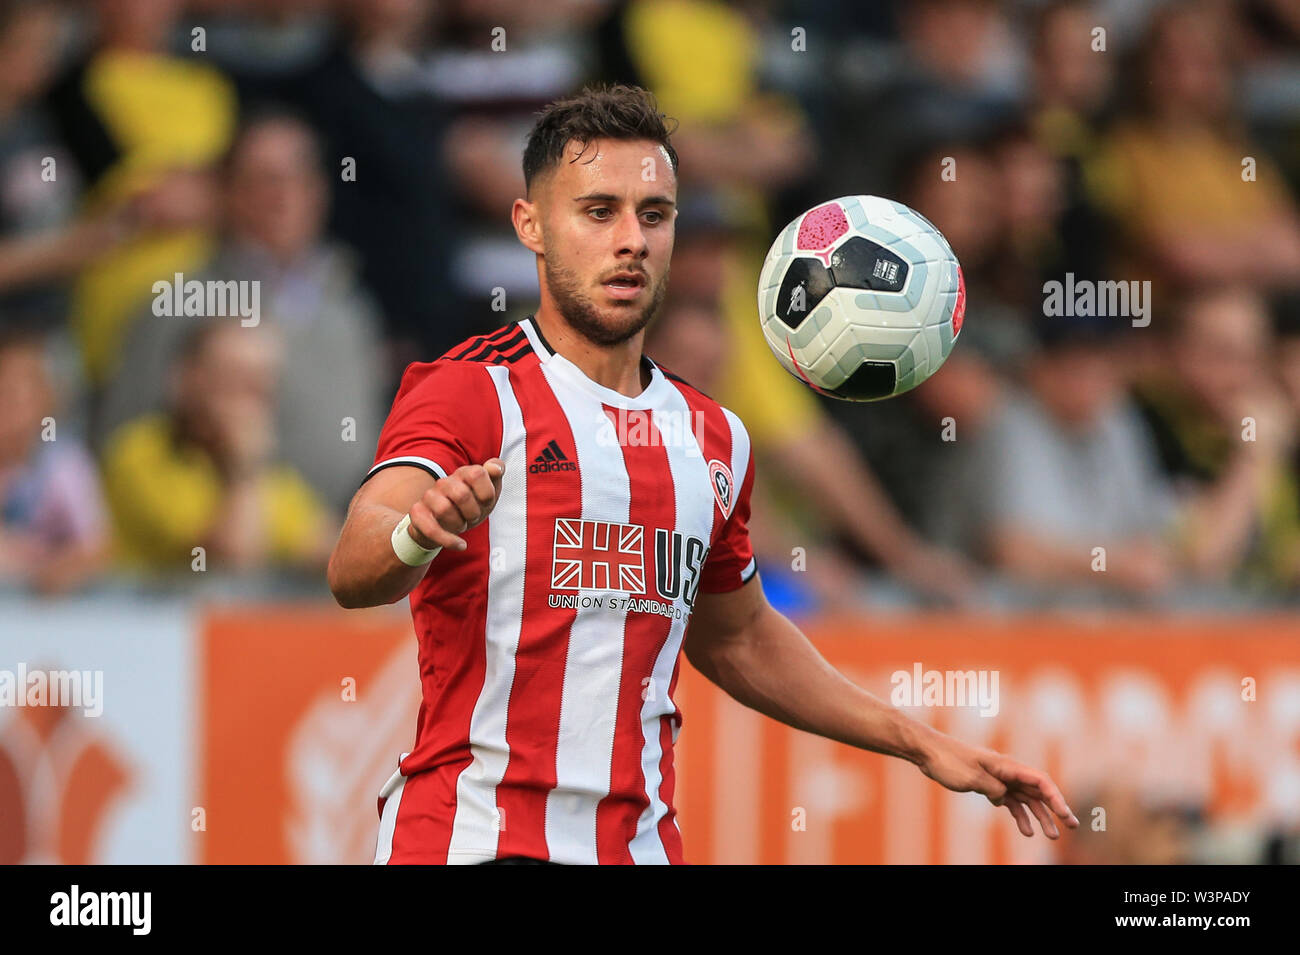 16th July 2019, Pirelli Stadium, Burton upon Trent, England; Pre-Season friendly, Burton Albion vs Sheffield United : George Baldock of Sheffield United during the game Credit: Mark Cosgrove/News Images  English Football League images are subject to DataCo Licence - Stock Image